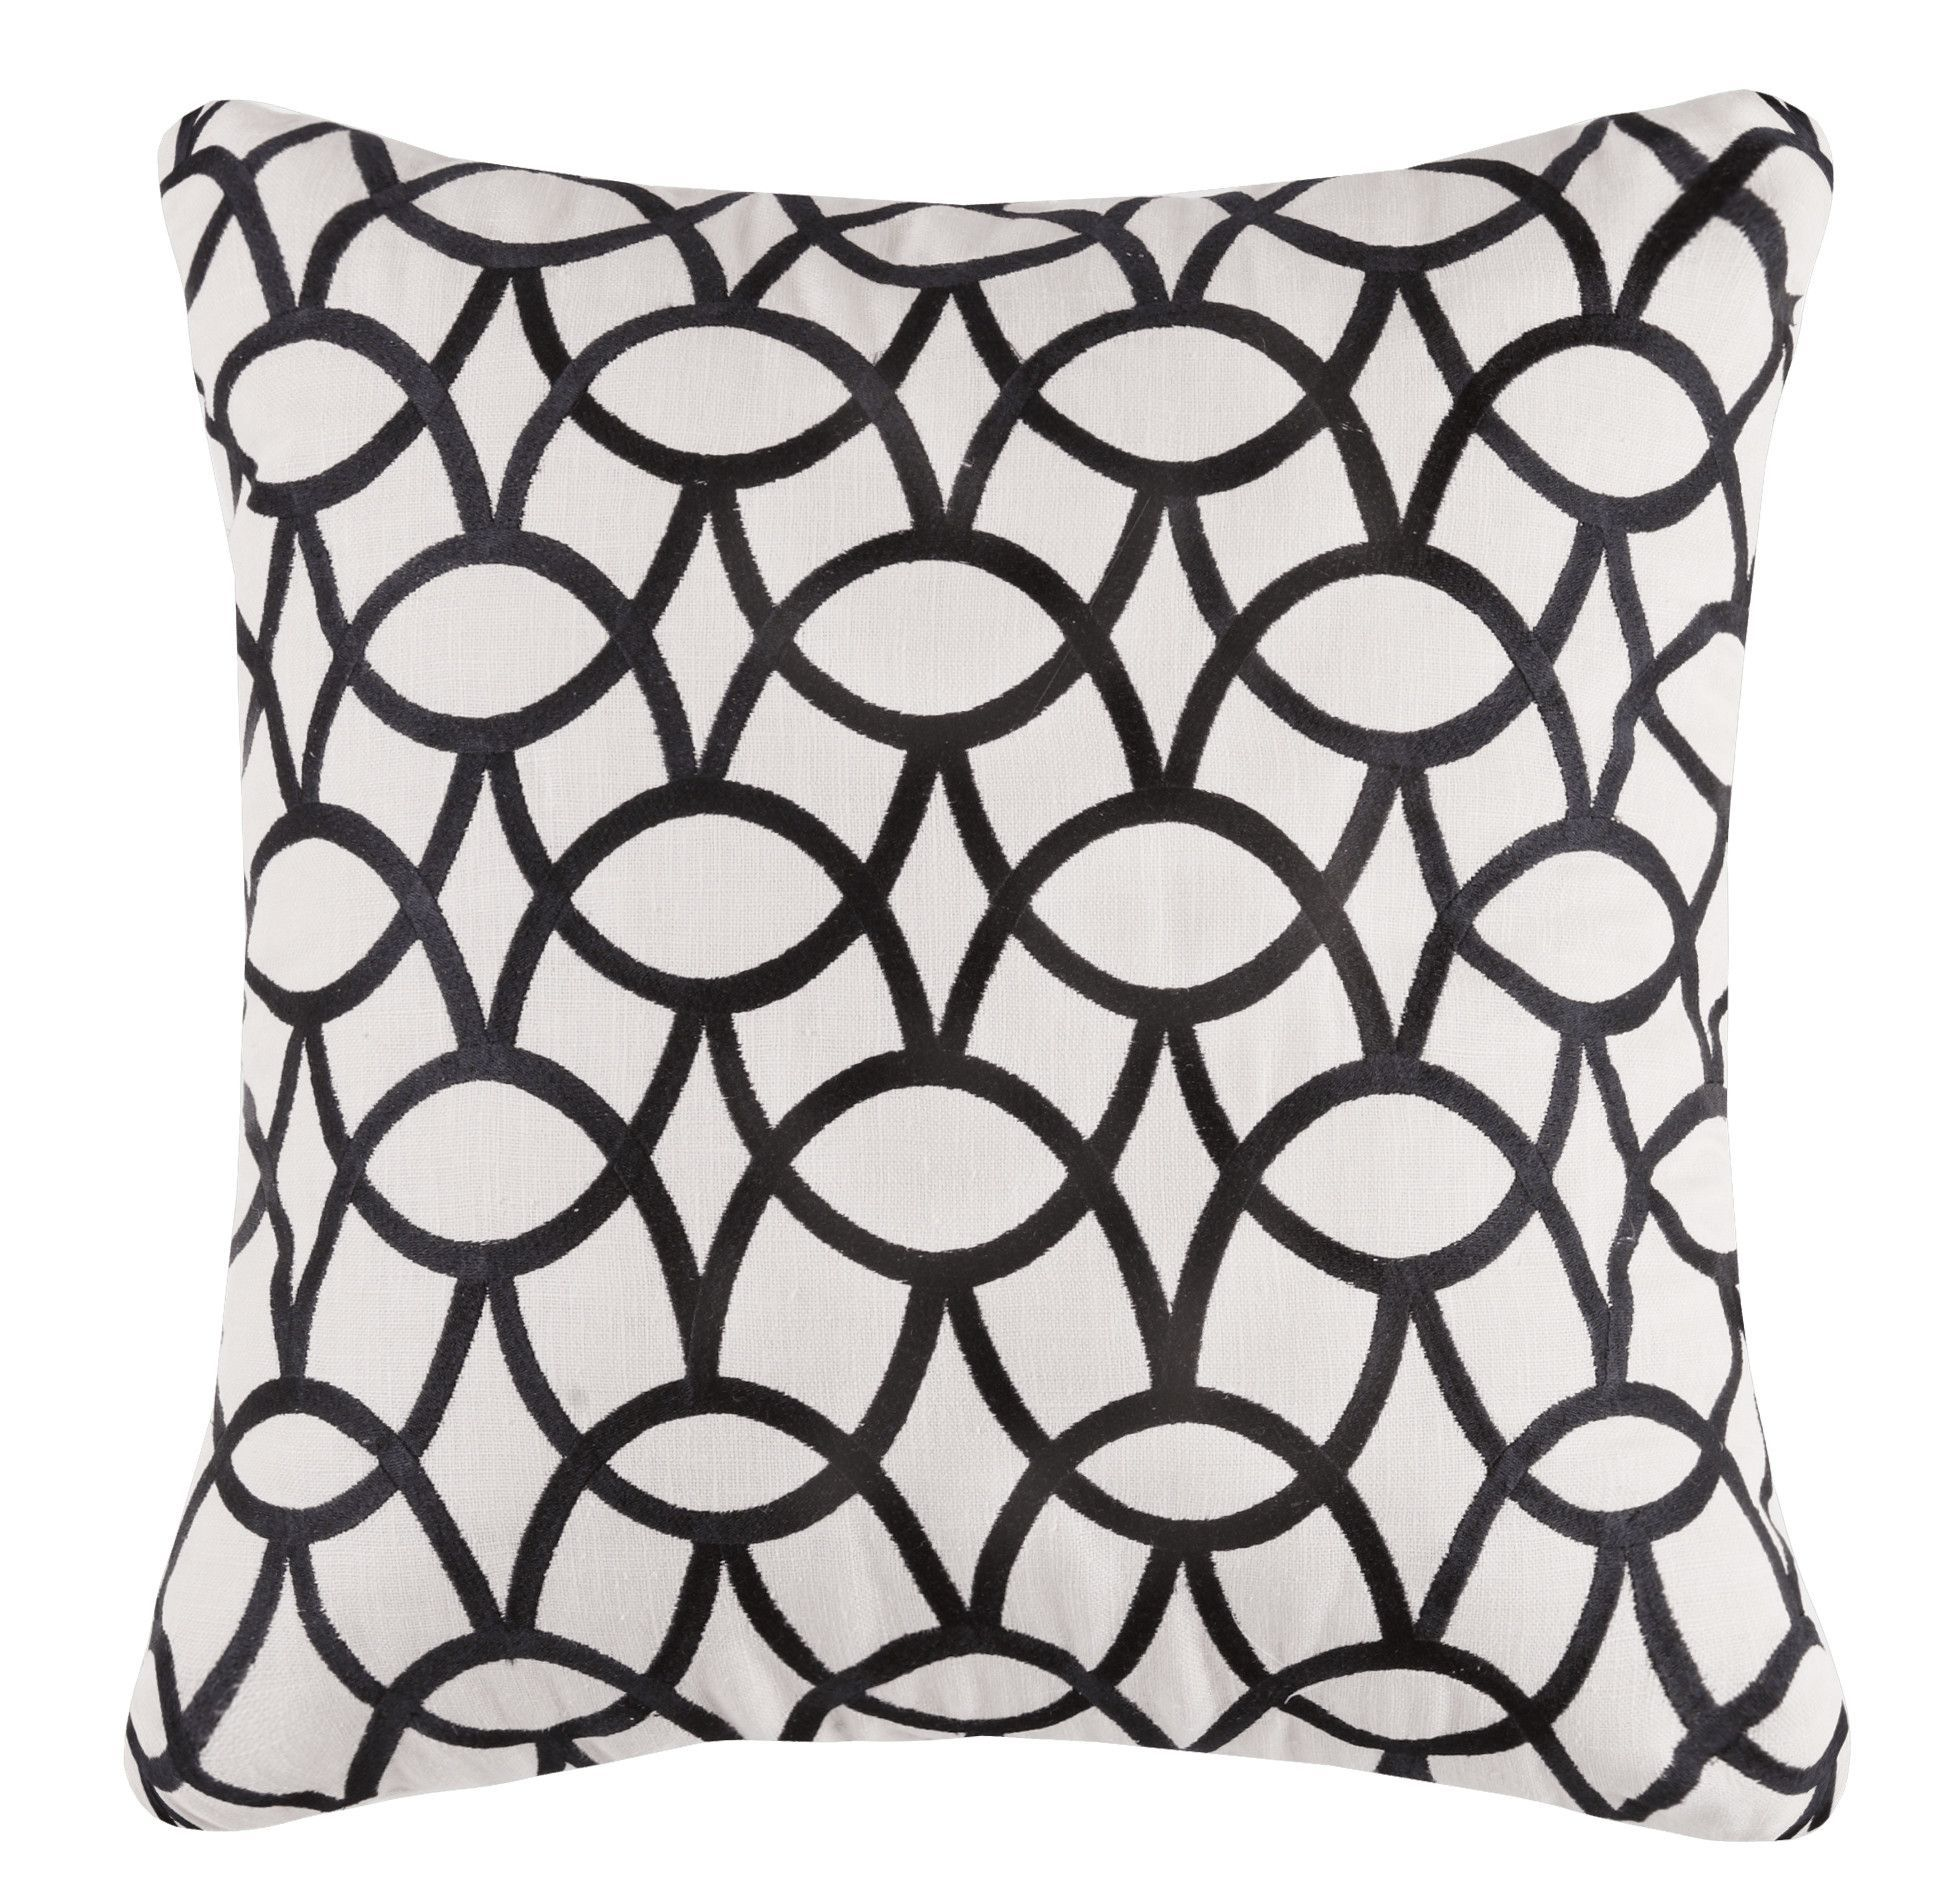 Abbey linen throw pillow throw pillows pillows and products